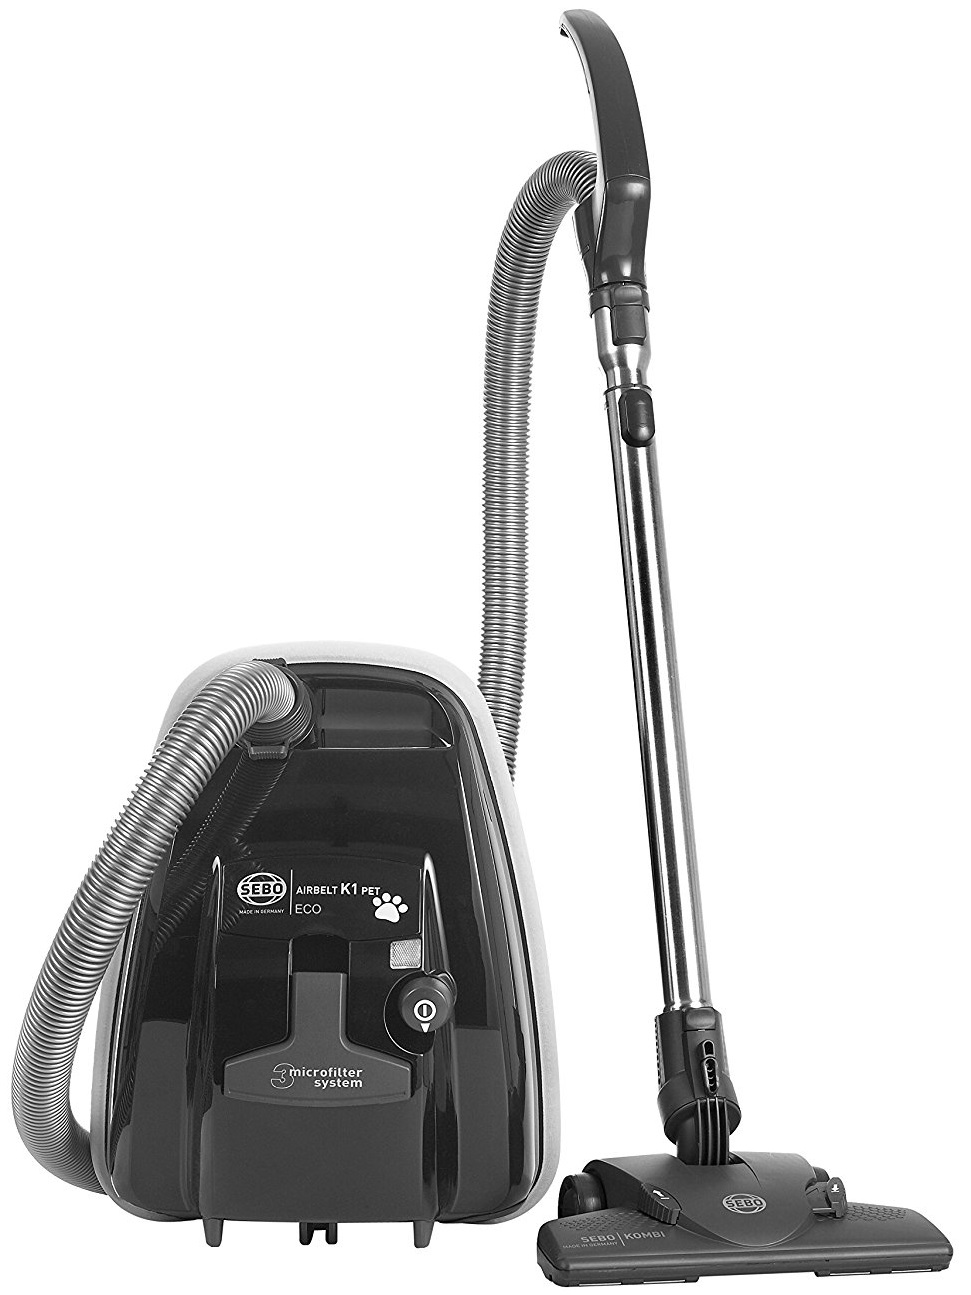 Sebo vacuum cleaners at bed bath and beyond - Sebo Airbelt K1 Pet Eco